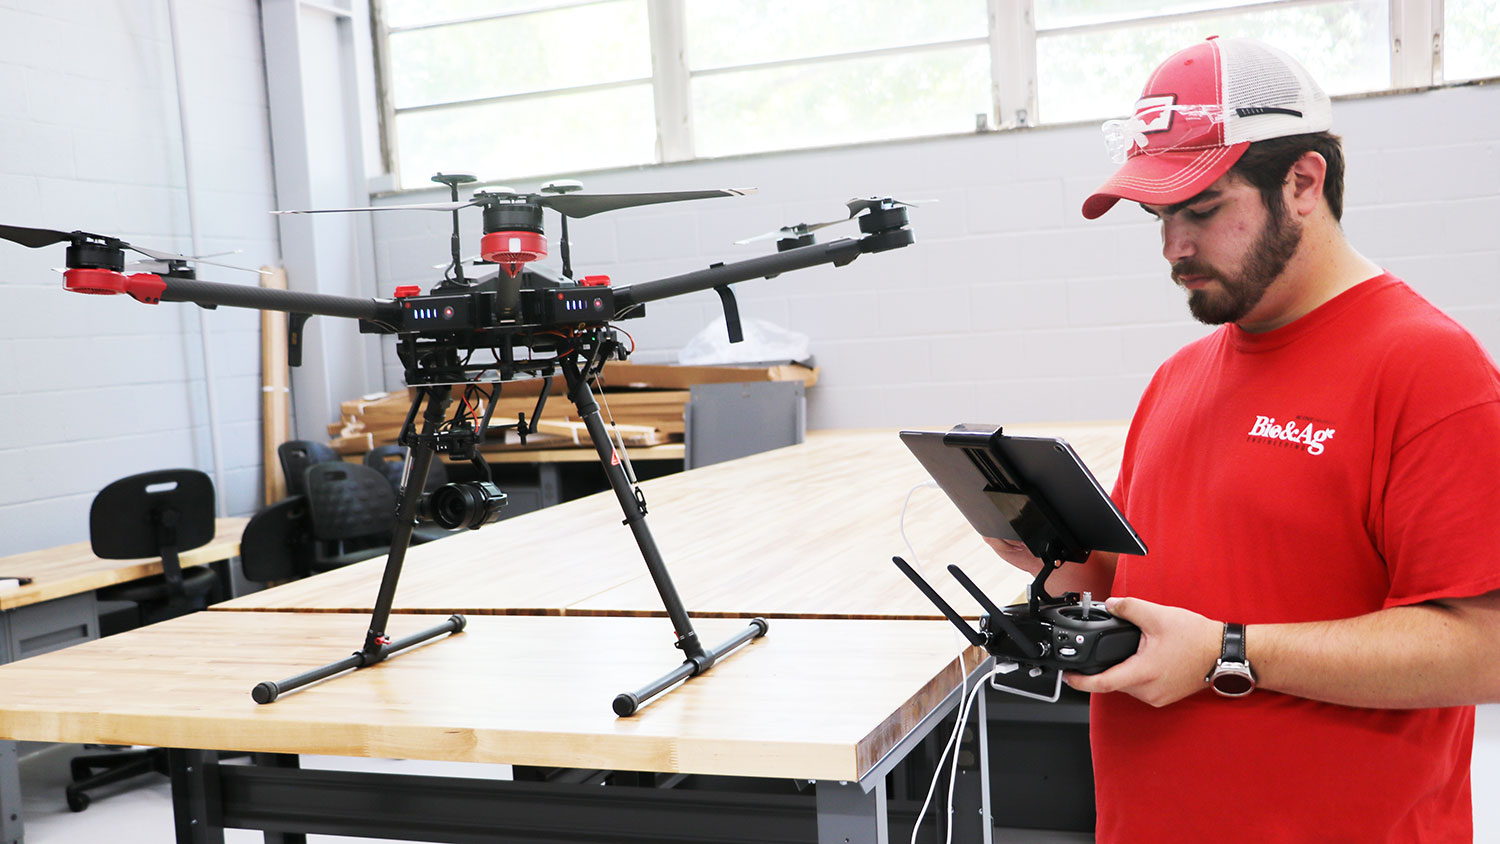 Student working with UAV technology in a lab